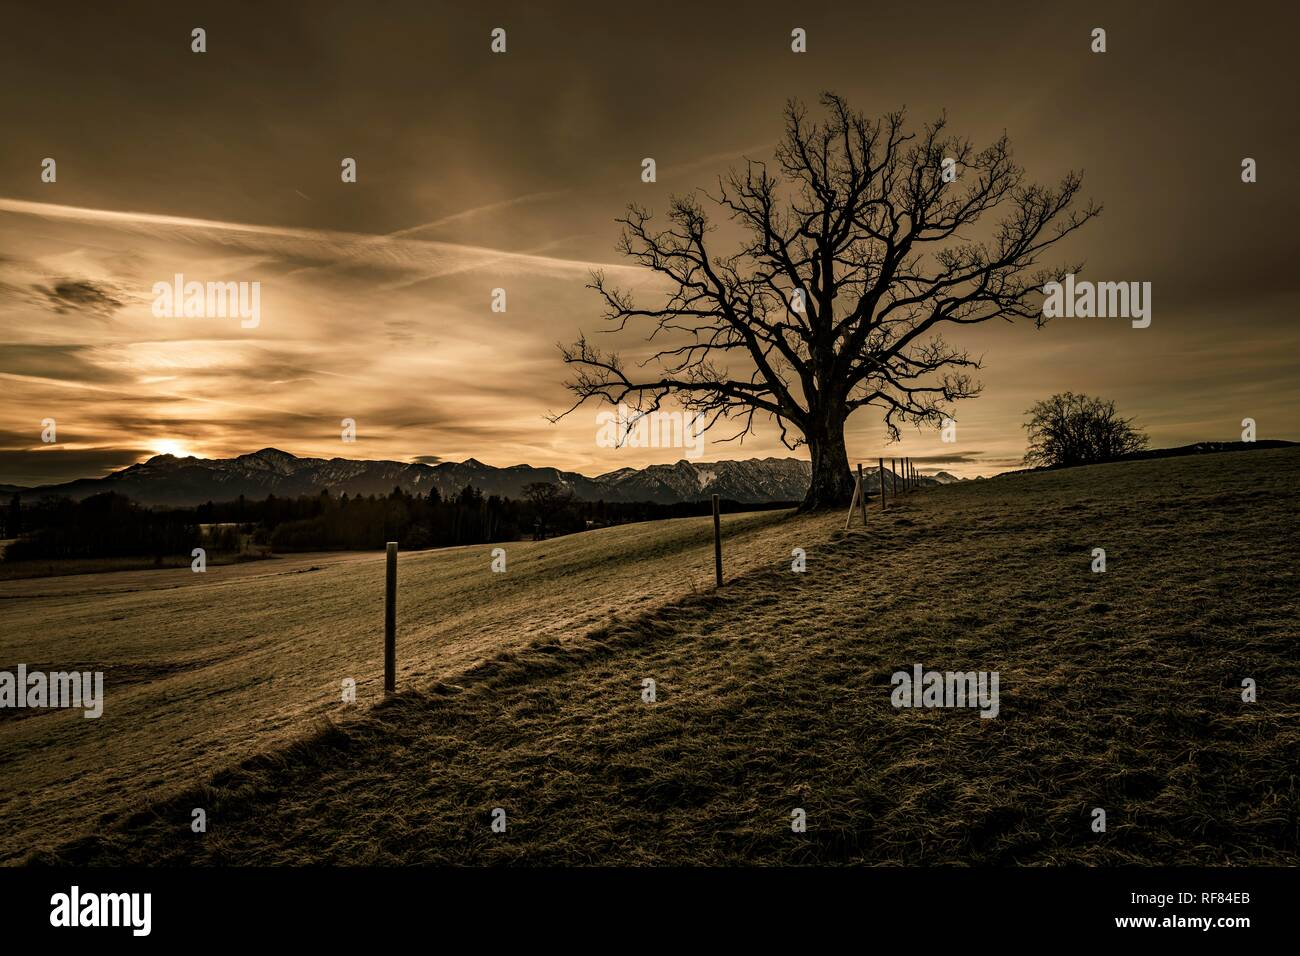 Leafless tree in front of a dramatic sky with Alpine chain in the background, Uffing, Staffelsee, Upper Bavaria, Germany - Stock Image